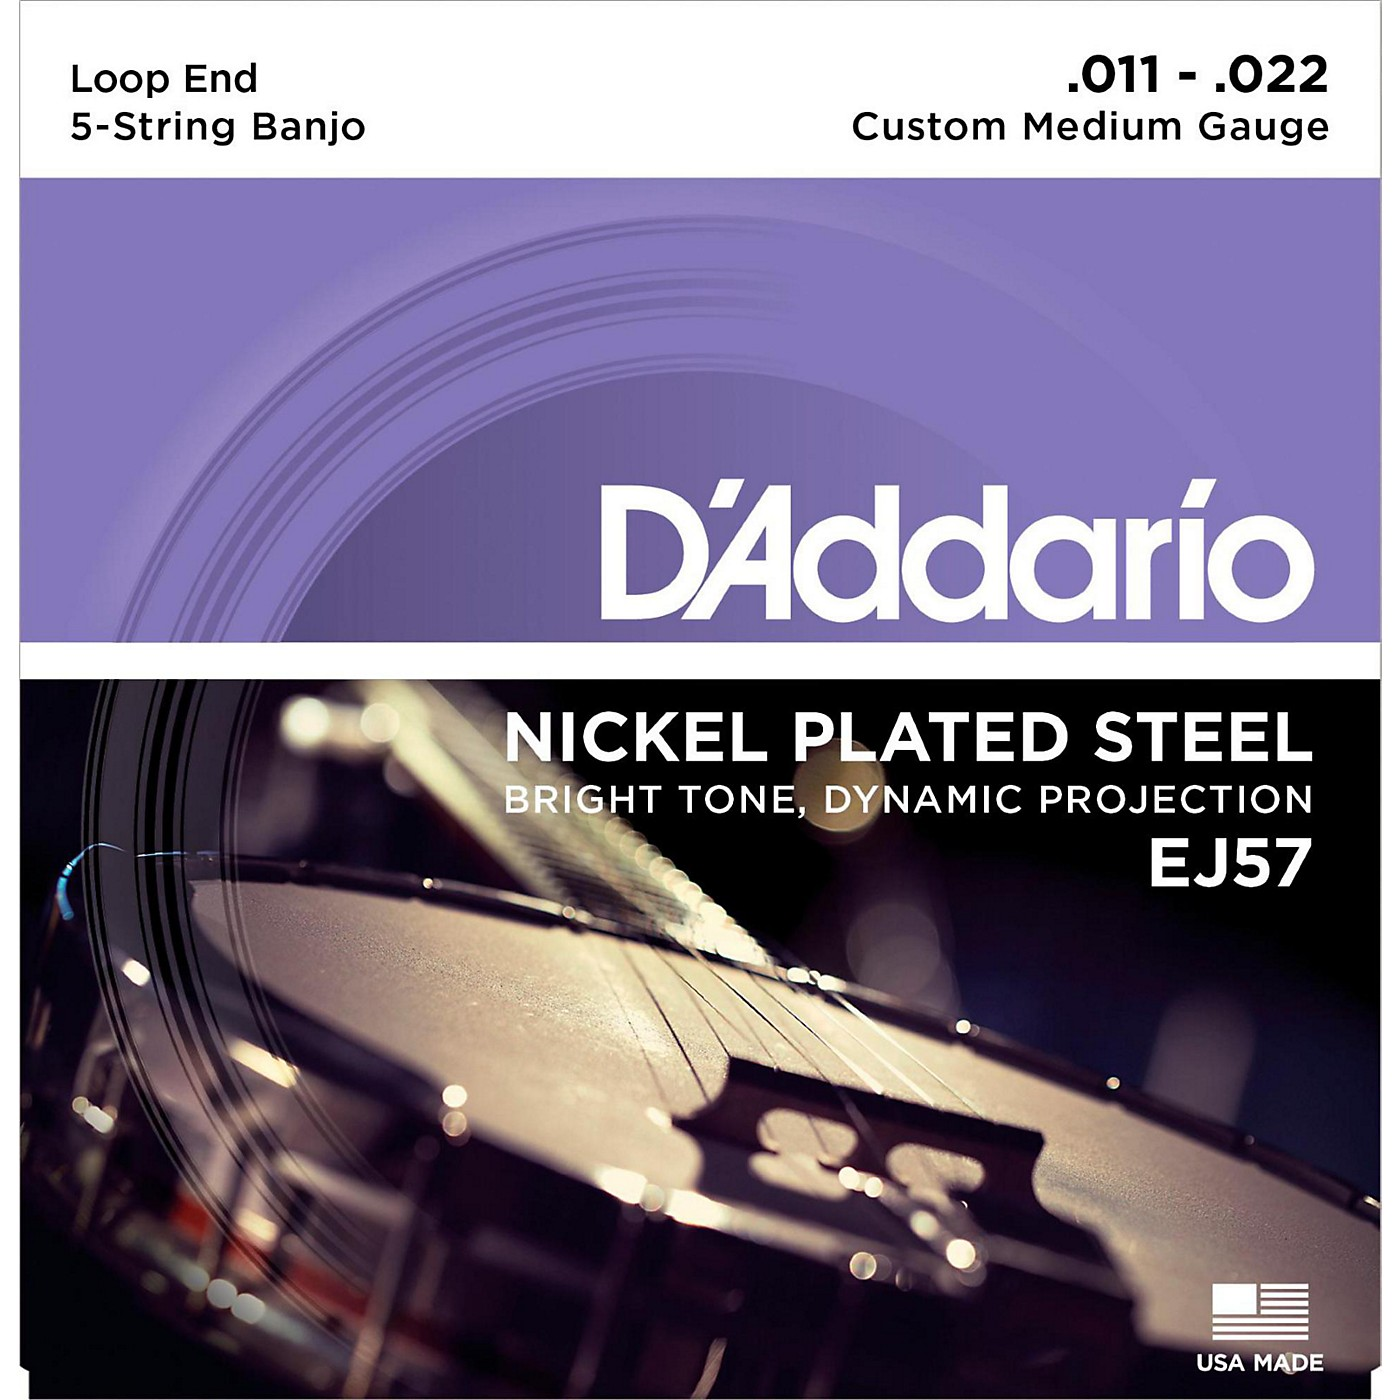 D'Addario EJ57 Nickel Custom Medium 5-String Banjo Strings (11-22) thumbnail